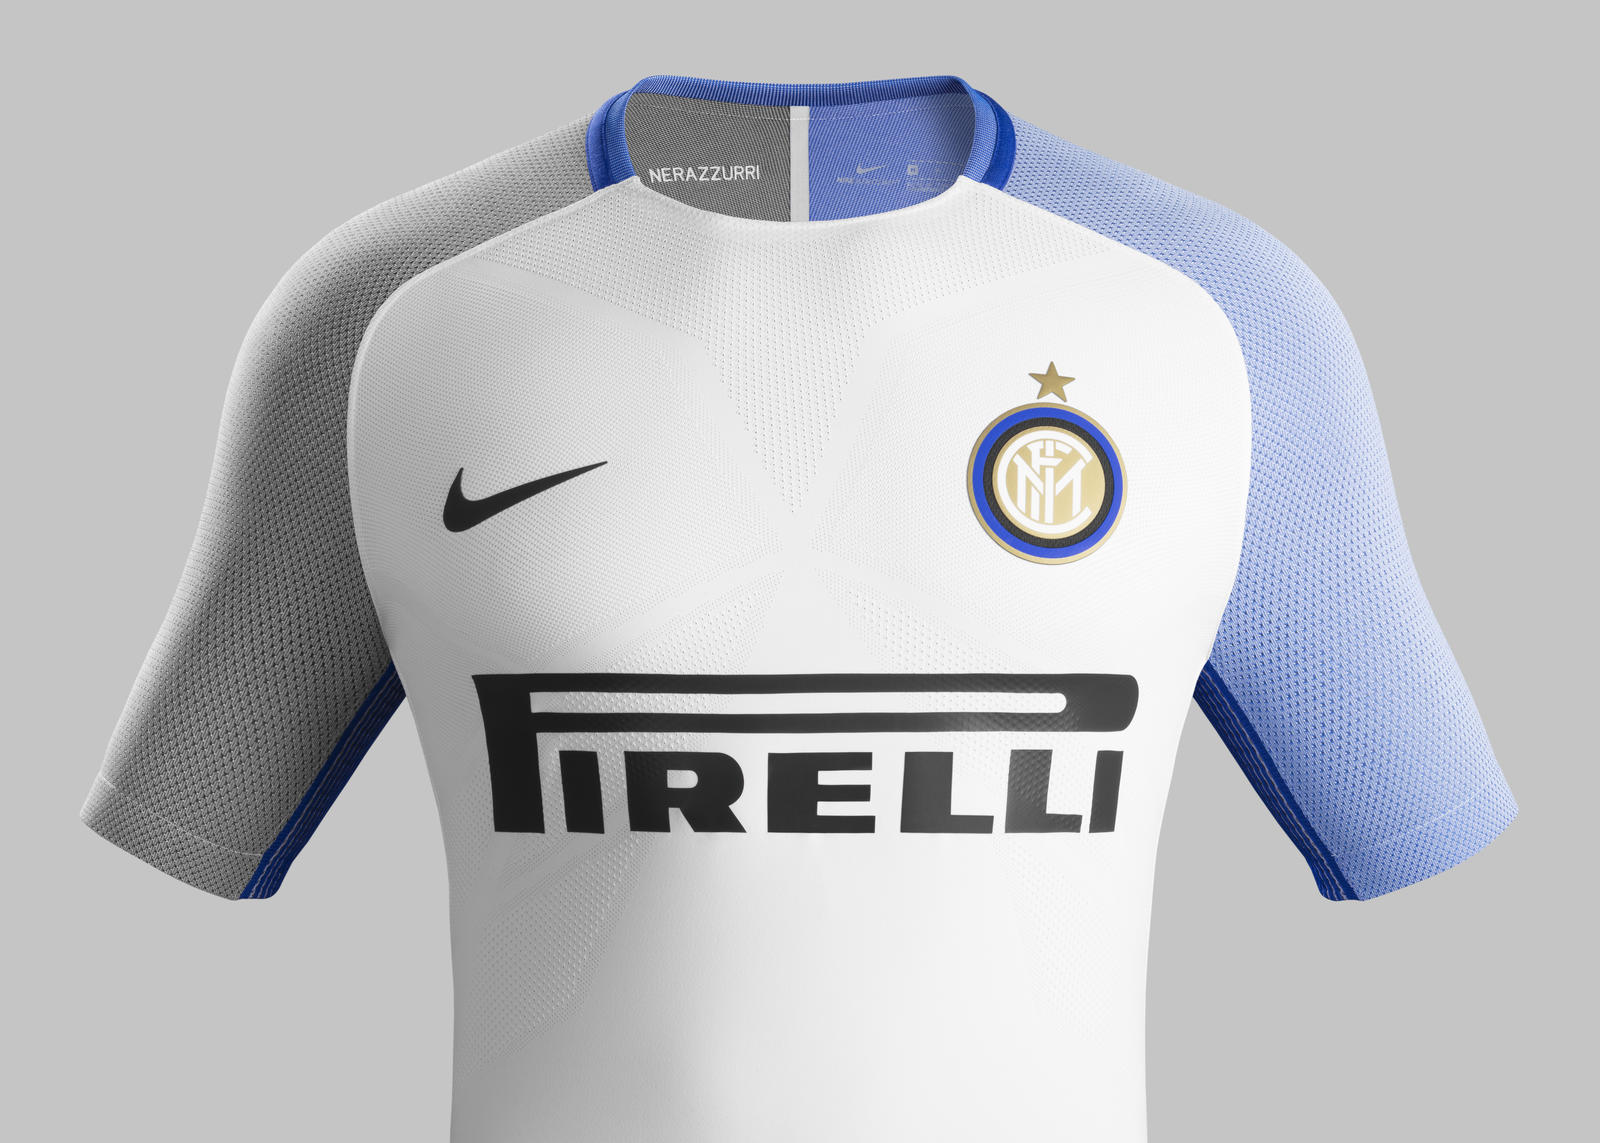 Fy17 18 club kits a front match inter milan r rectangle 1600